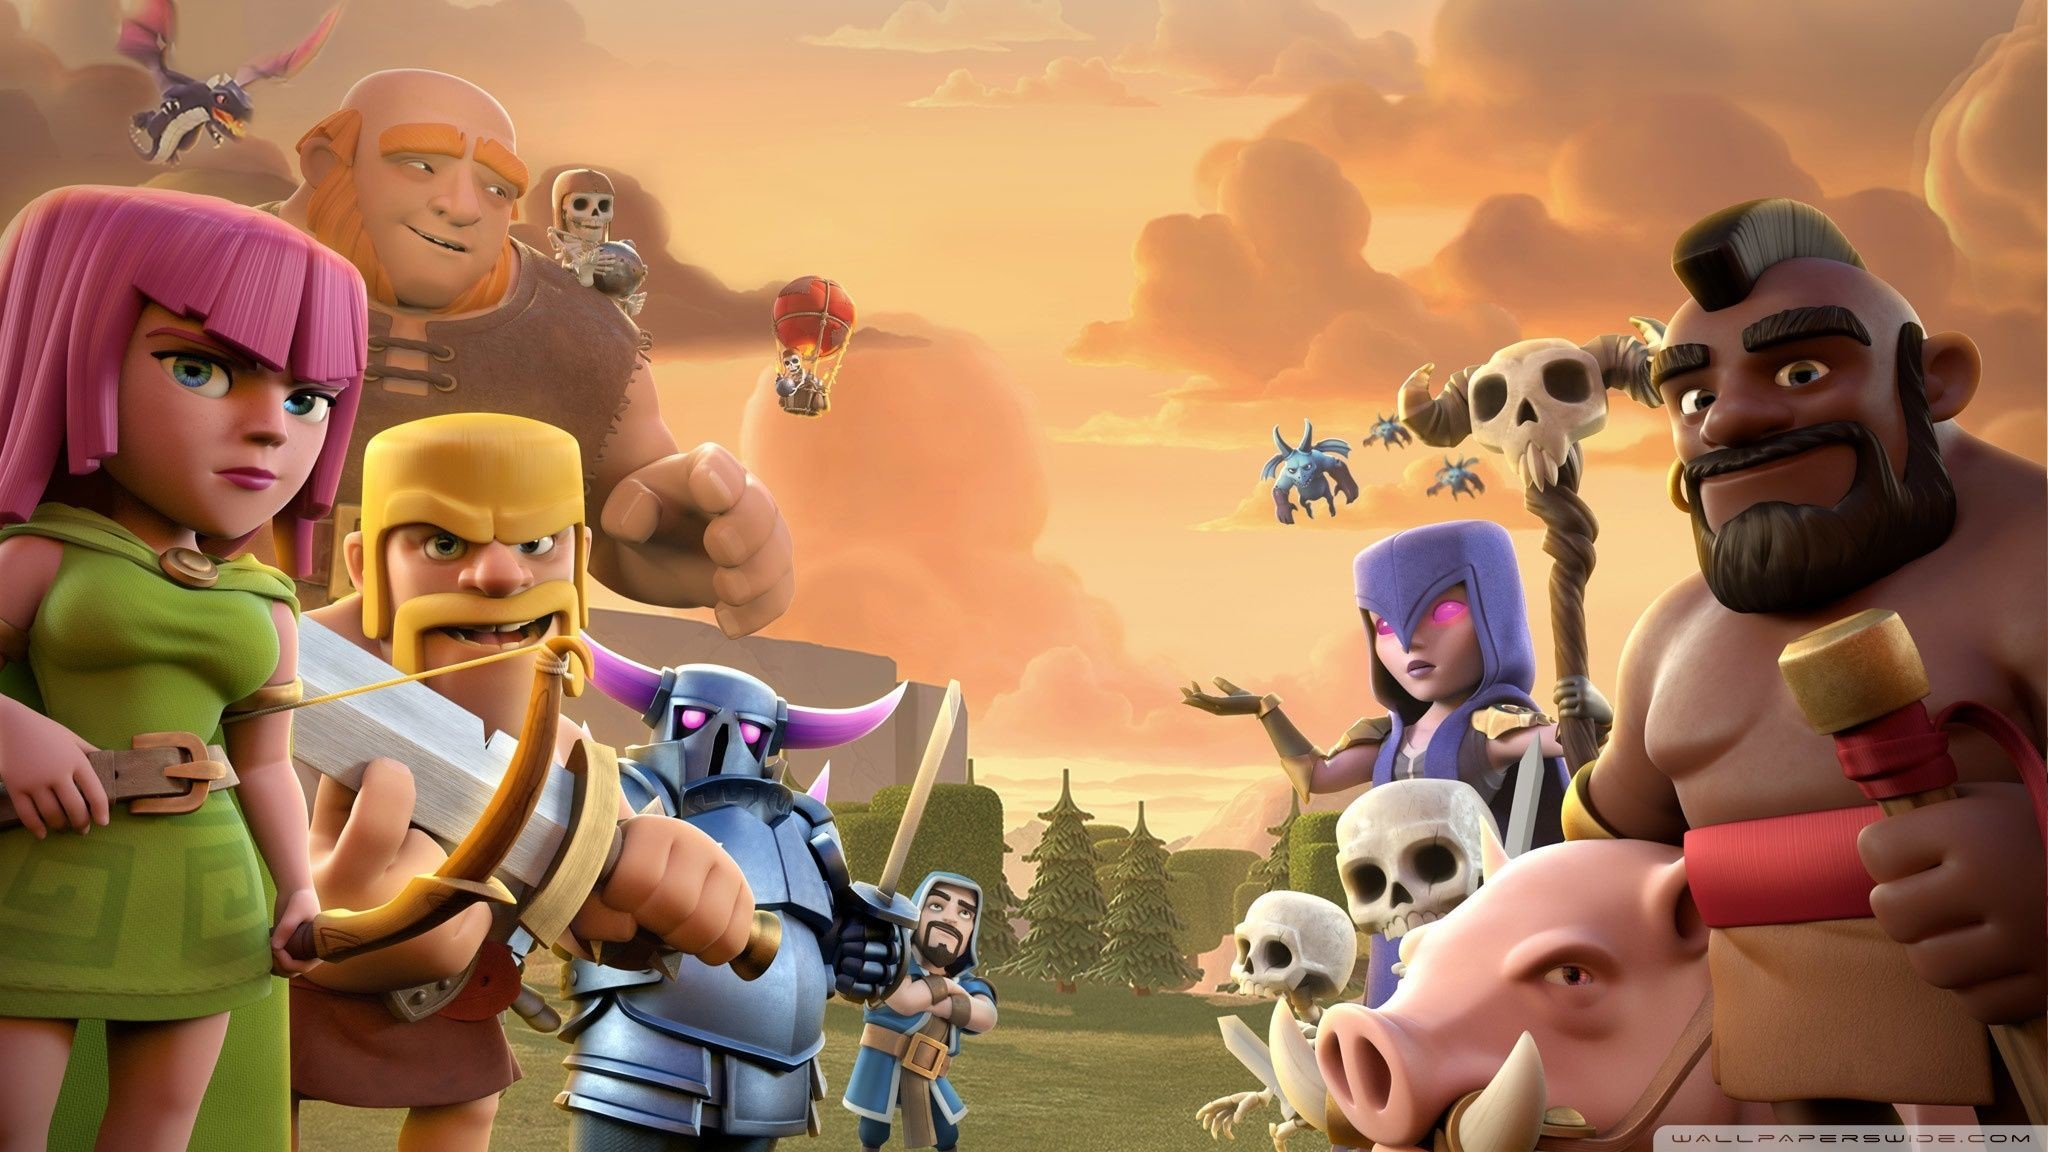 #8 Wallpaper HD Android Clash of Clans